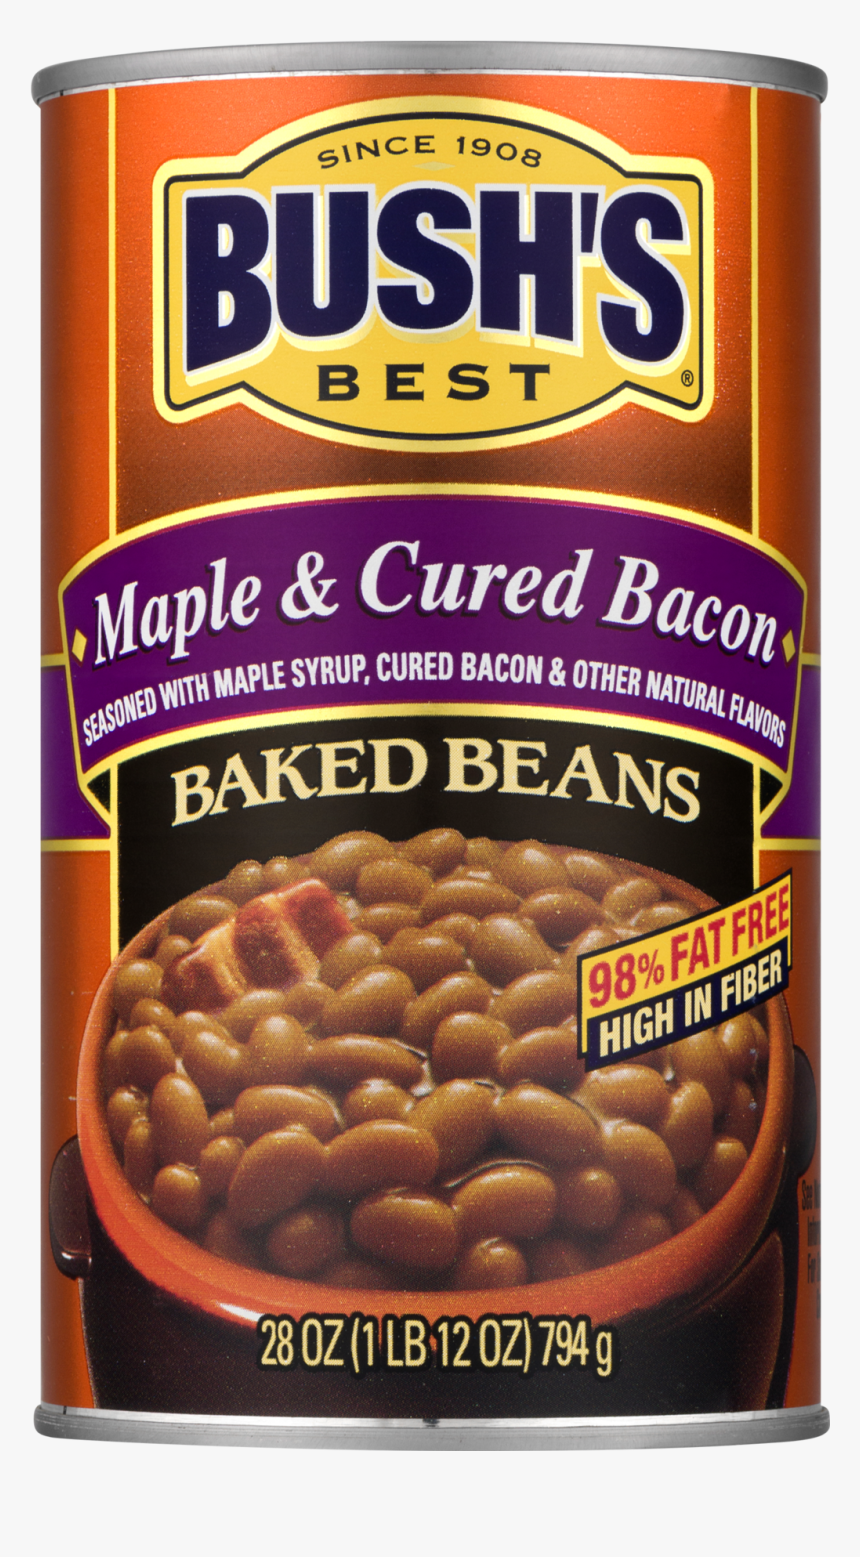 Baked Beans Hd Png Download Transparent Png Image Pngitem